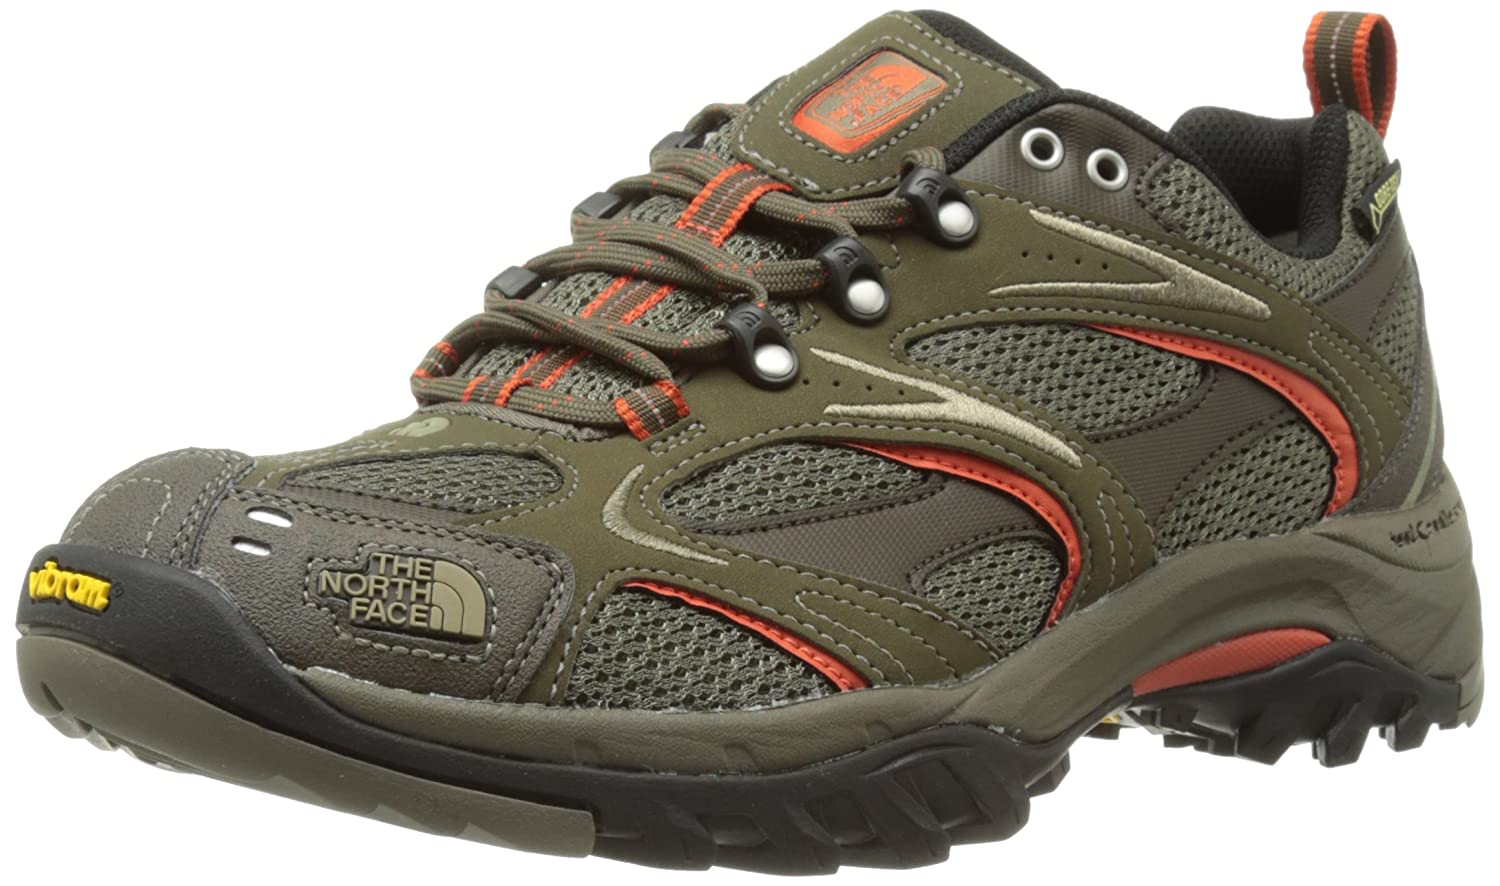 48316aefe The North Face Men's Hedgehog GTX XCR III Trainers - Coffee Brown/Zion  Orange, UK 10